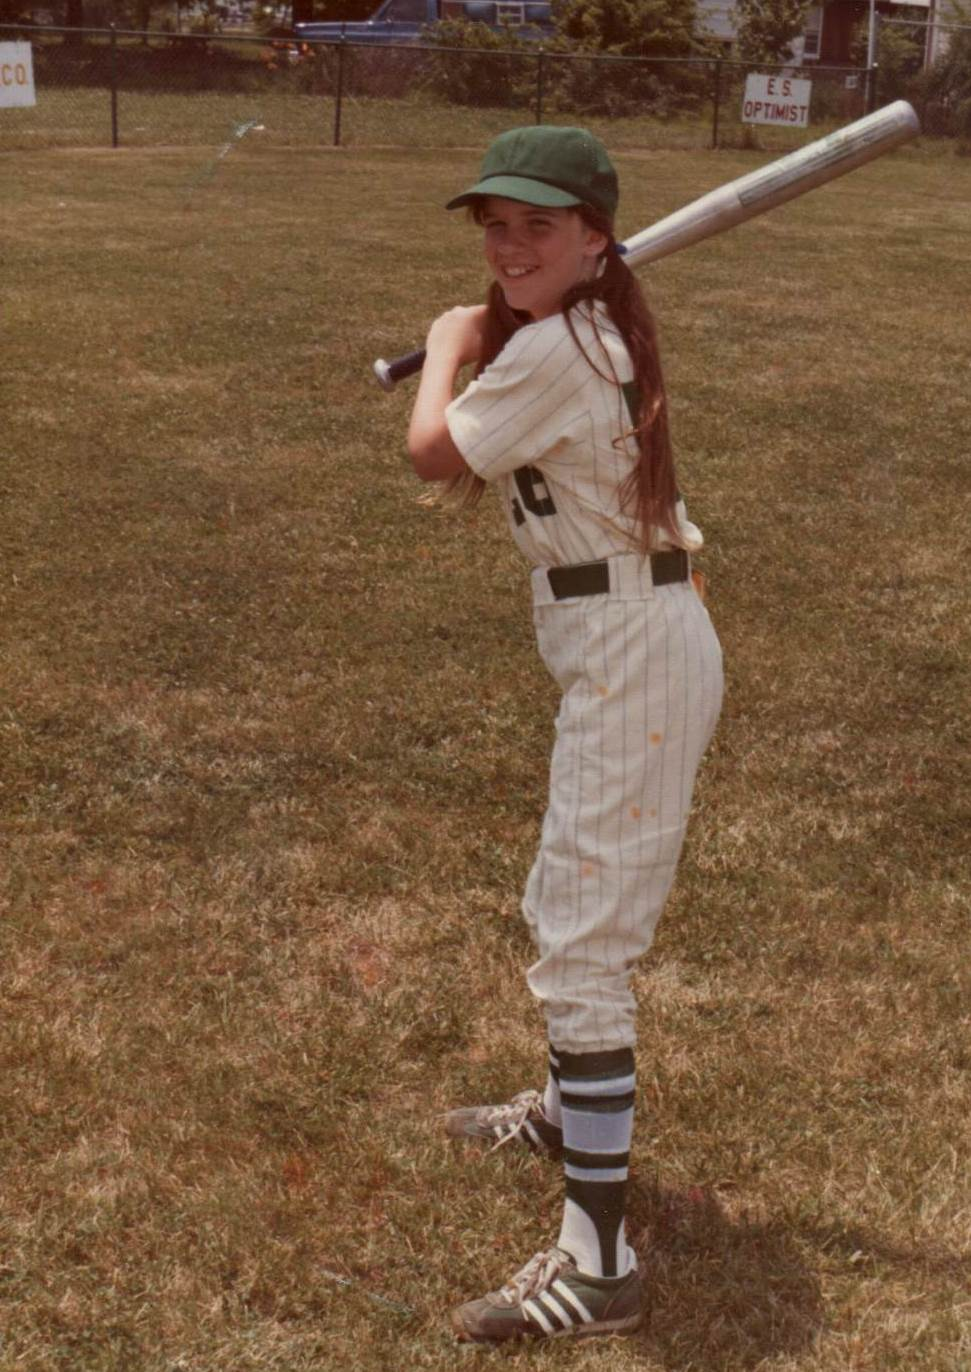 Sandy as a young girl in her baseball uniform.